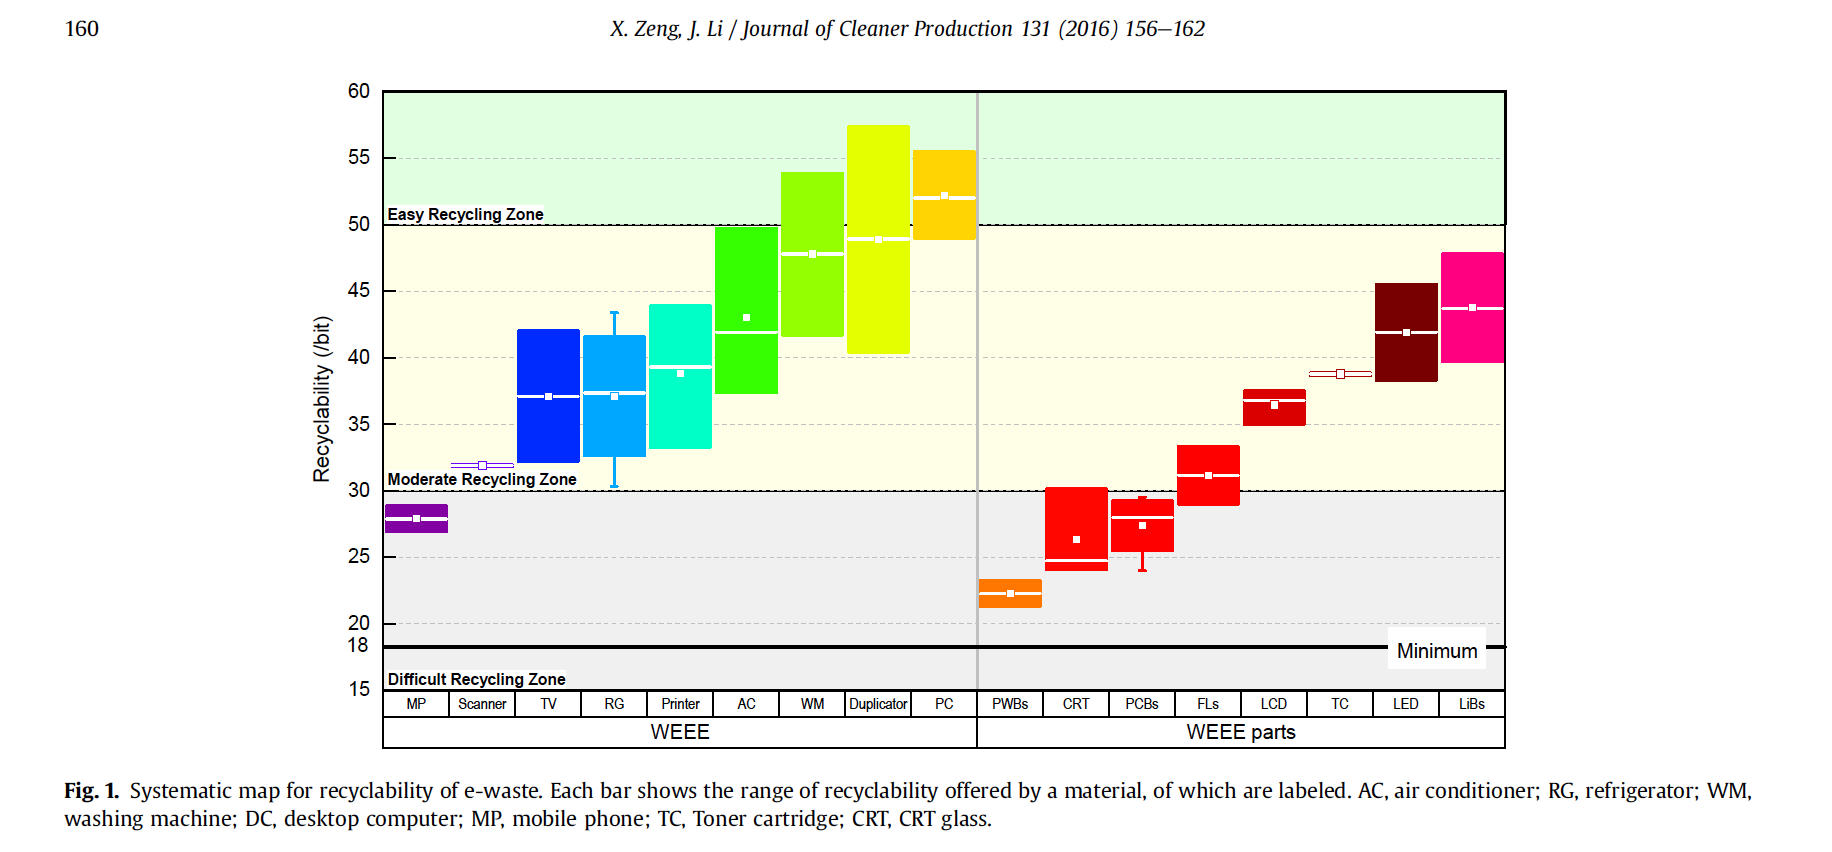 A chart categorizing the recyclability of various electronic components